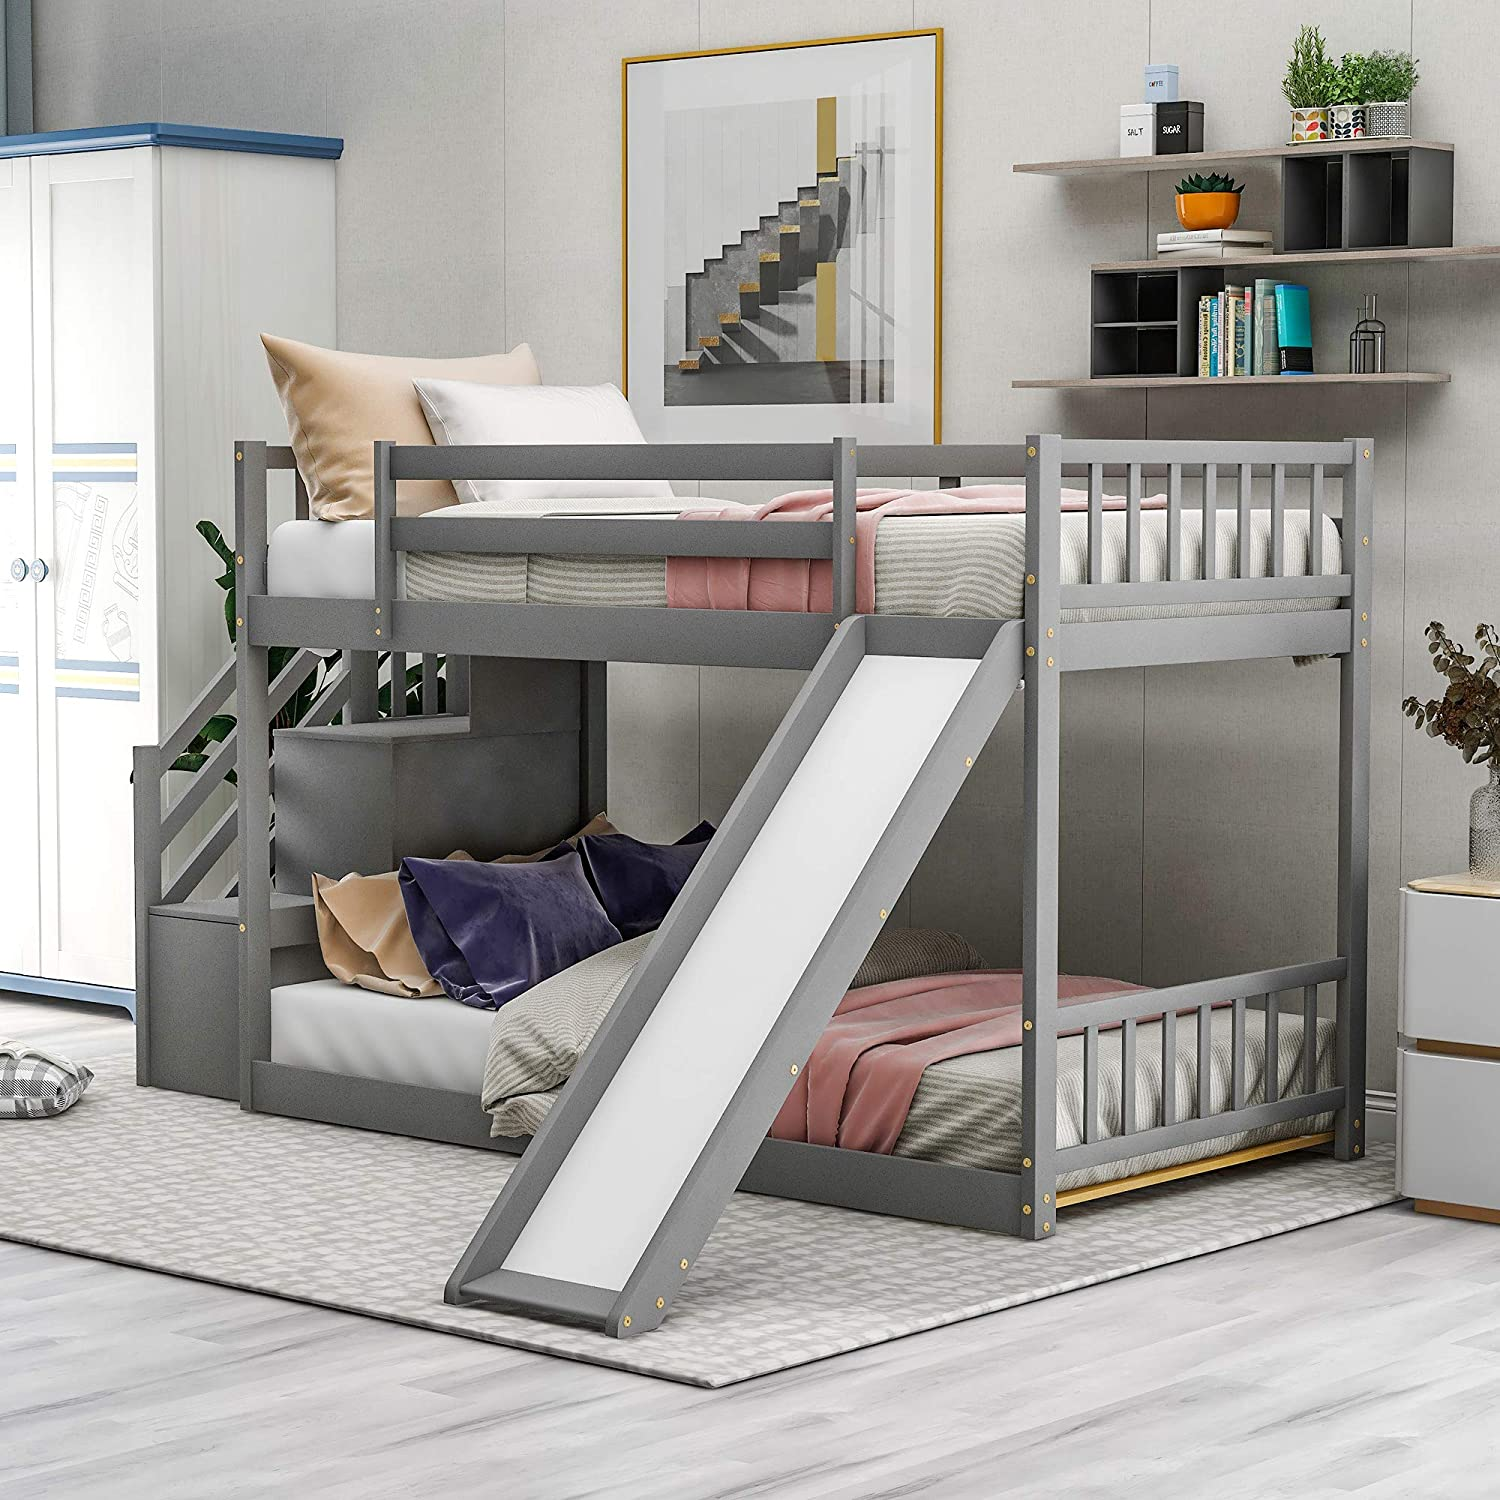 Buy Softsea Toddlers Low Bunk Beds With Slide Twin Over Twin Bunk Bed With Stairs And Storage Space For Kids Teens Juniors Multifunctional Design Two Step Stairs Storages Grey Bunk Online In Indonesia